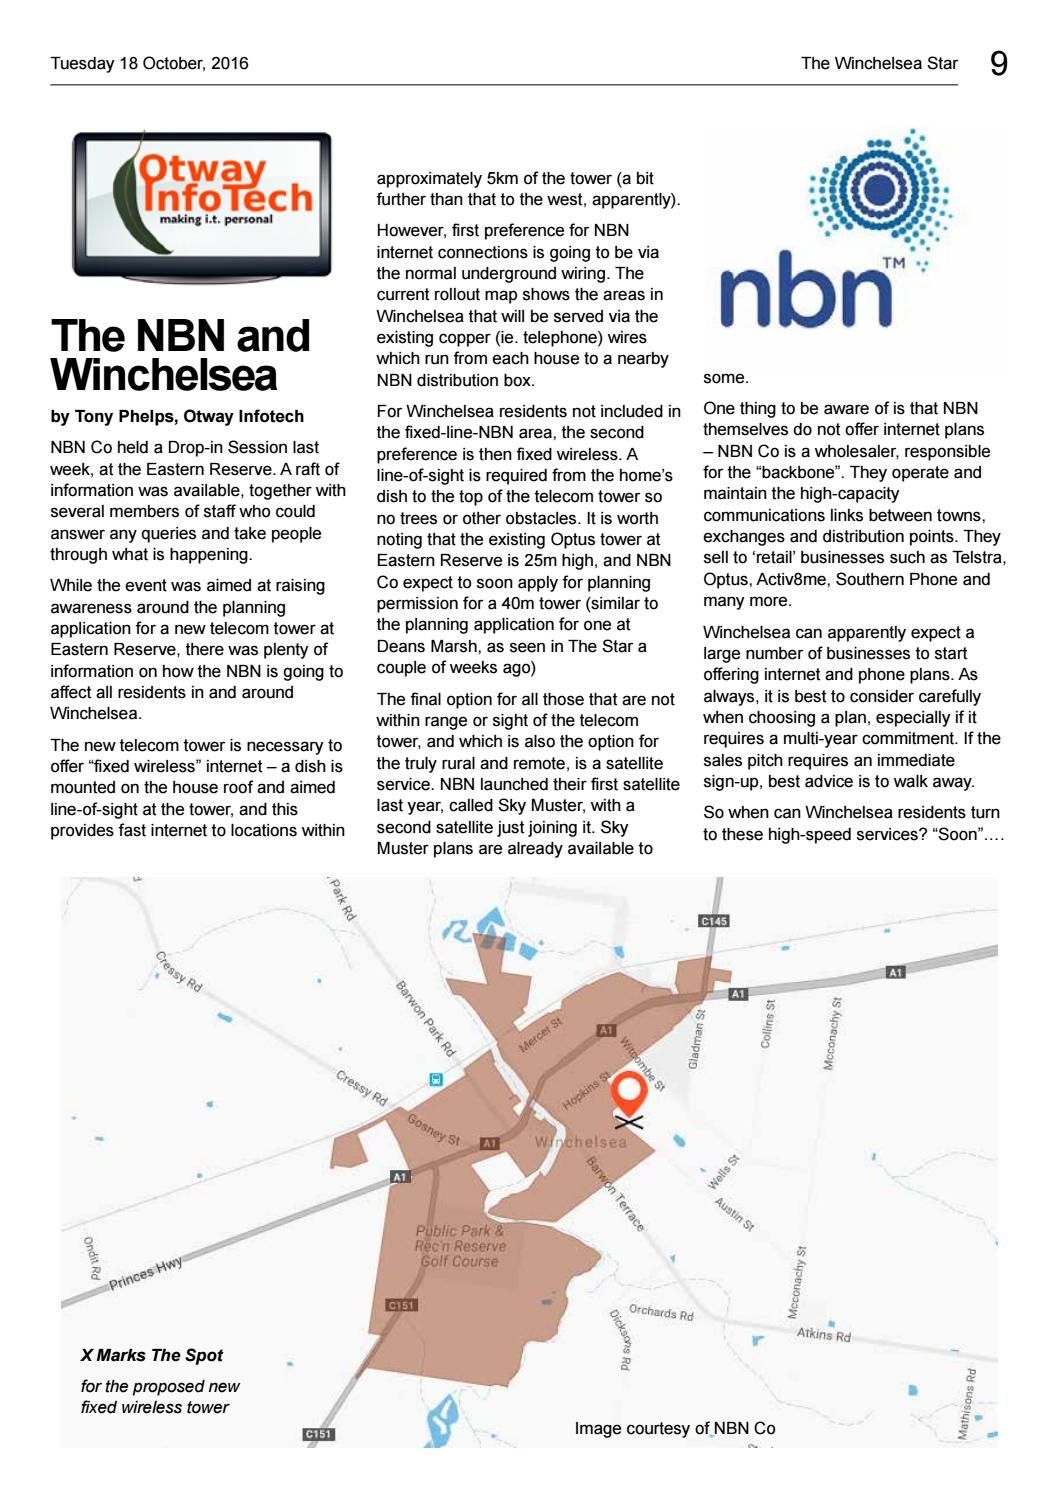 Winchelsea Star 18 Oct 2016 Vol39 Ed41 By The Issuu House Wiring Internet Connection